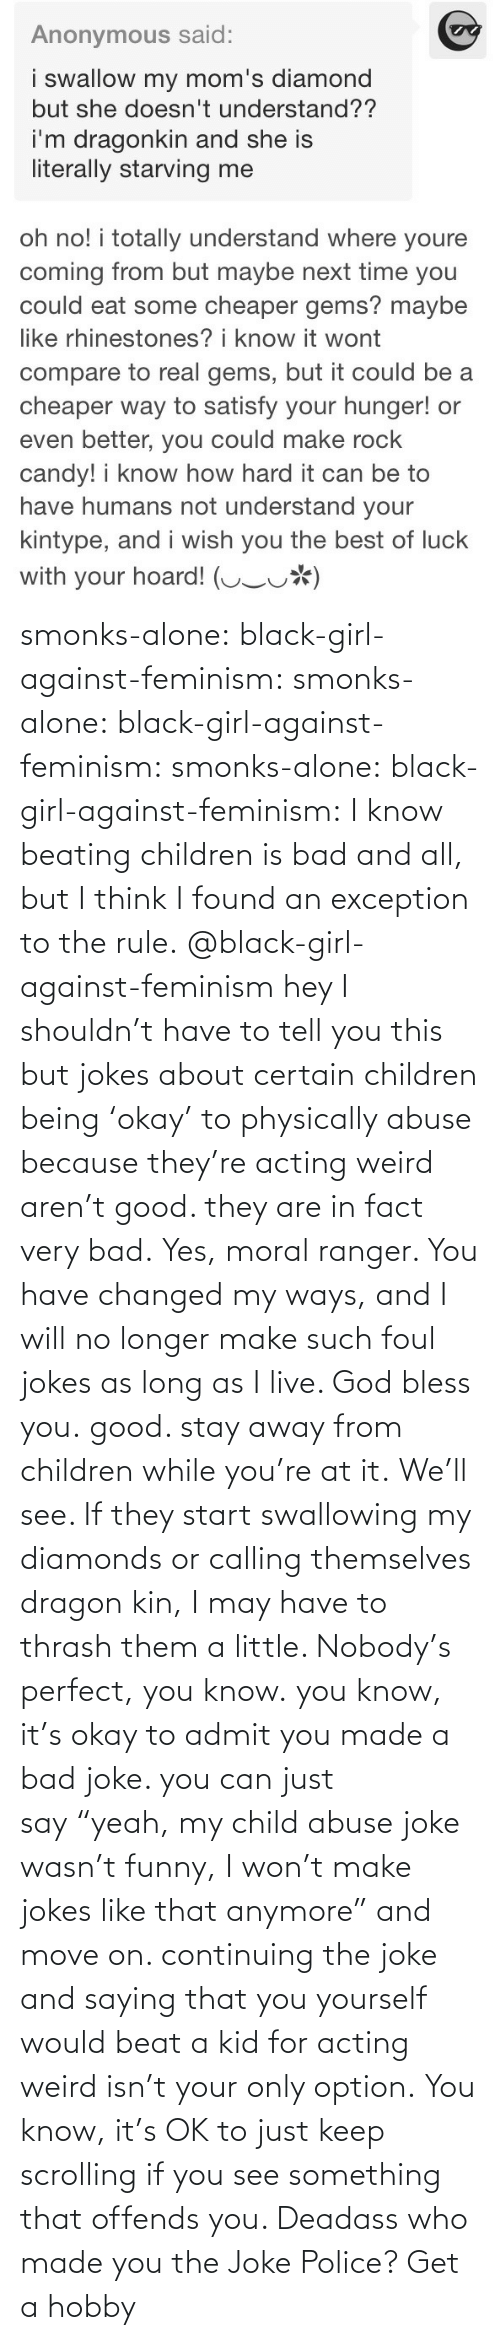 "Being Alone, Bad, and Children: smonks-alone:  black-girl-against-feminism: smonks-alone:  black-girl-against-feminism:  smonks-alone:  black-girl-against-feminism: I know beating children is bad and all, but I think I found an exception to the rule. @black-girl-against-feminism hey I shouldn't have to tell you this but jokes about certain children being 'okay' to physically abuse because they're acting weird aren't good. they are in fact very bad.  Yes, moral ranger. You have changed my ways, and I will no longer make such foul jokes as long as I live. God bless you.  good. stay away from children while you're at it.  We'll see. If they start swallowing my diamonds or calling themselves dragon kin, I may have to thrash them a little. Nobody's perfect, you know.  you know, it's okay to admit you made a bad joke. you can just say ""yeah, my child abuse joke wasn't funny, I won't make jokes like that anymore"" and move on. continuing the joke and saying that you yourself would beat a kid for acting weird isn't your only option.   You know, it's OK to just keep scrolling if you see something that offends you. Deadass who made you the Joke Police? Get a hobby"